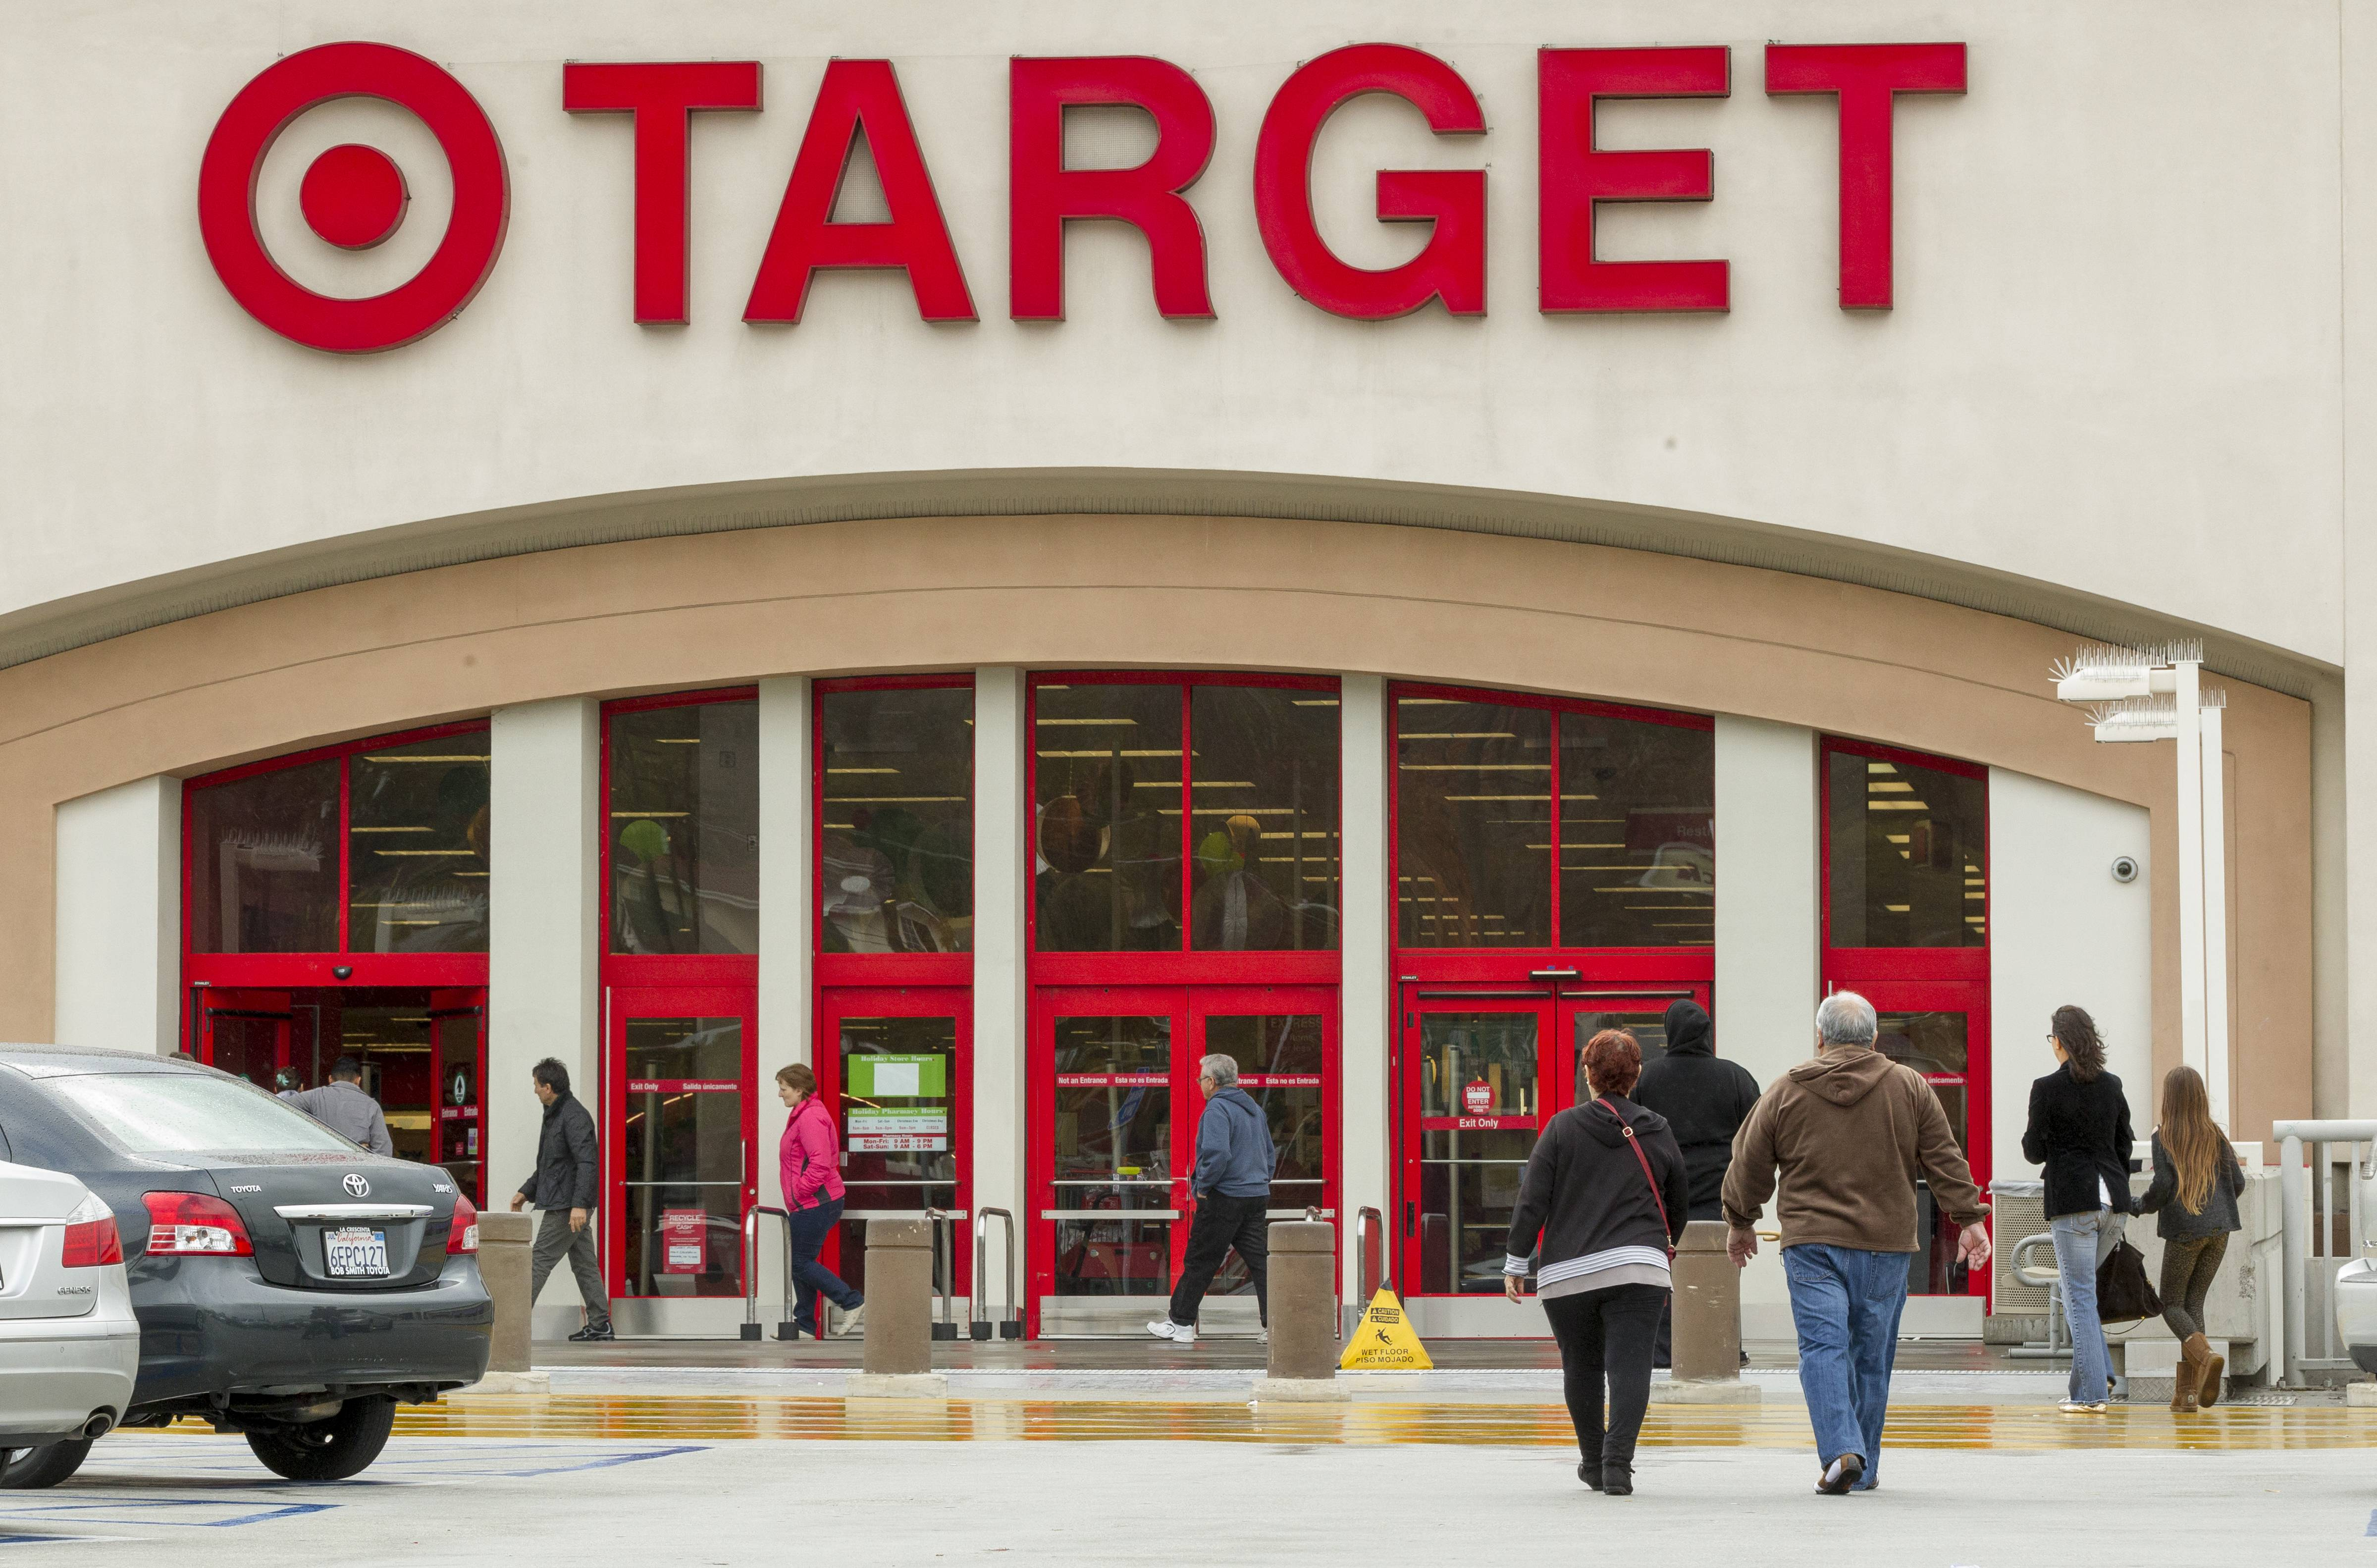 Target is having an identity crisis. The nation's third largest retailer was once high-flying, but now it's struggling to find its place in the minds of American shoppers.